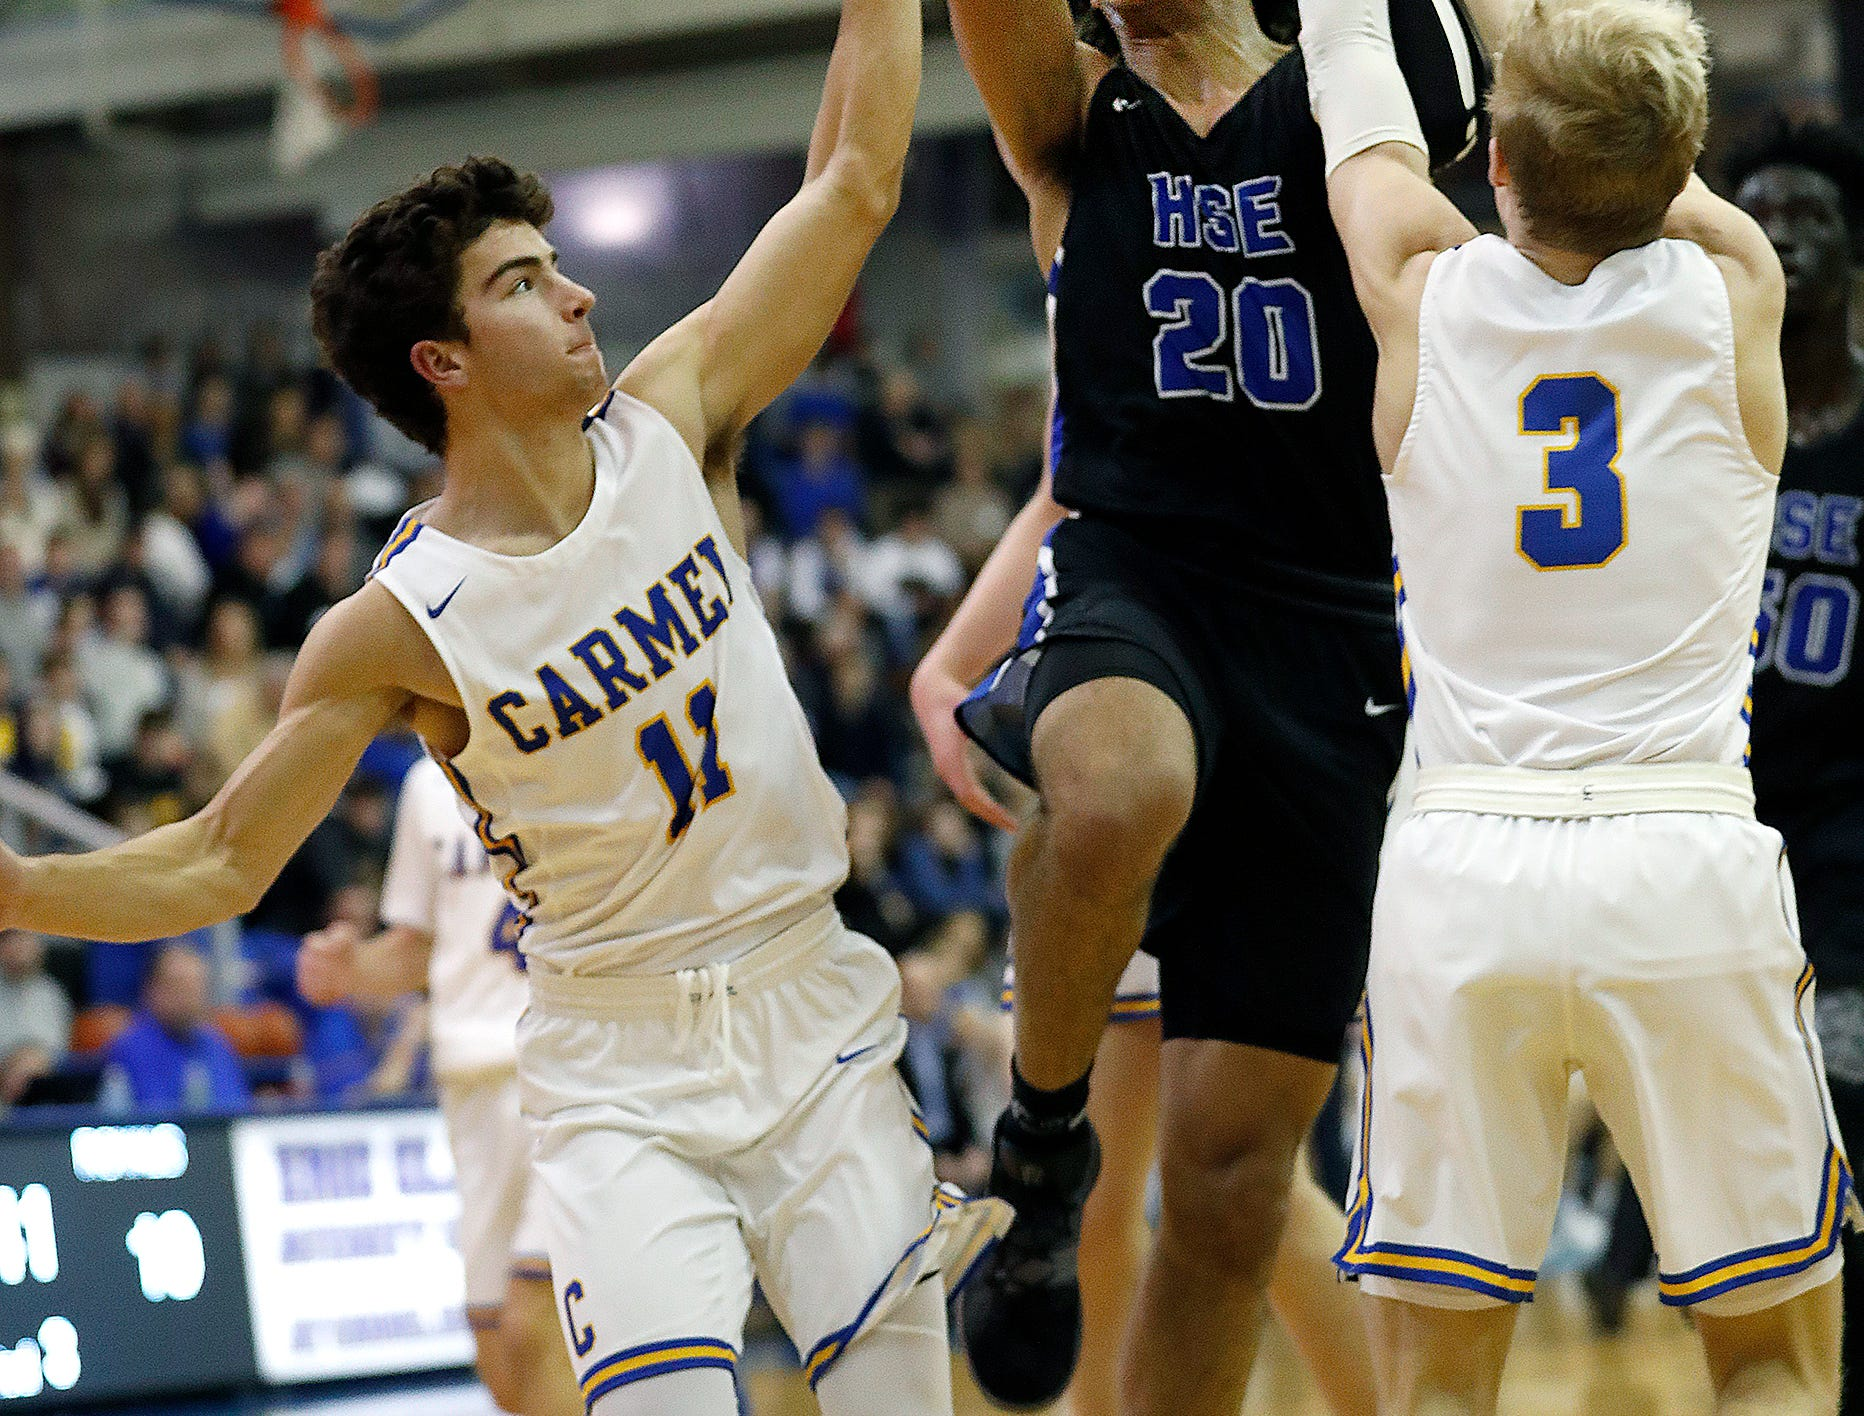 Carmel Greyhounds Luke Heady (11) and Karsten Windlan (3) attempt to stop Hamilton Southeastern Royals Chris Grubbs (20) in the second half of their game at Carmel High School on Friday, Feb. 8, 2019.